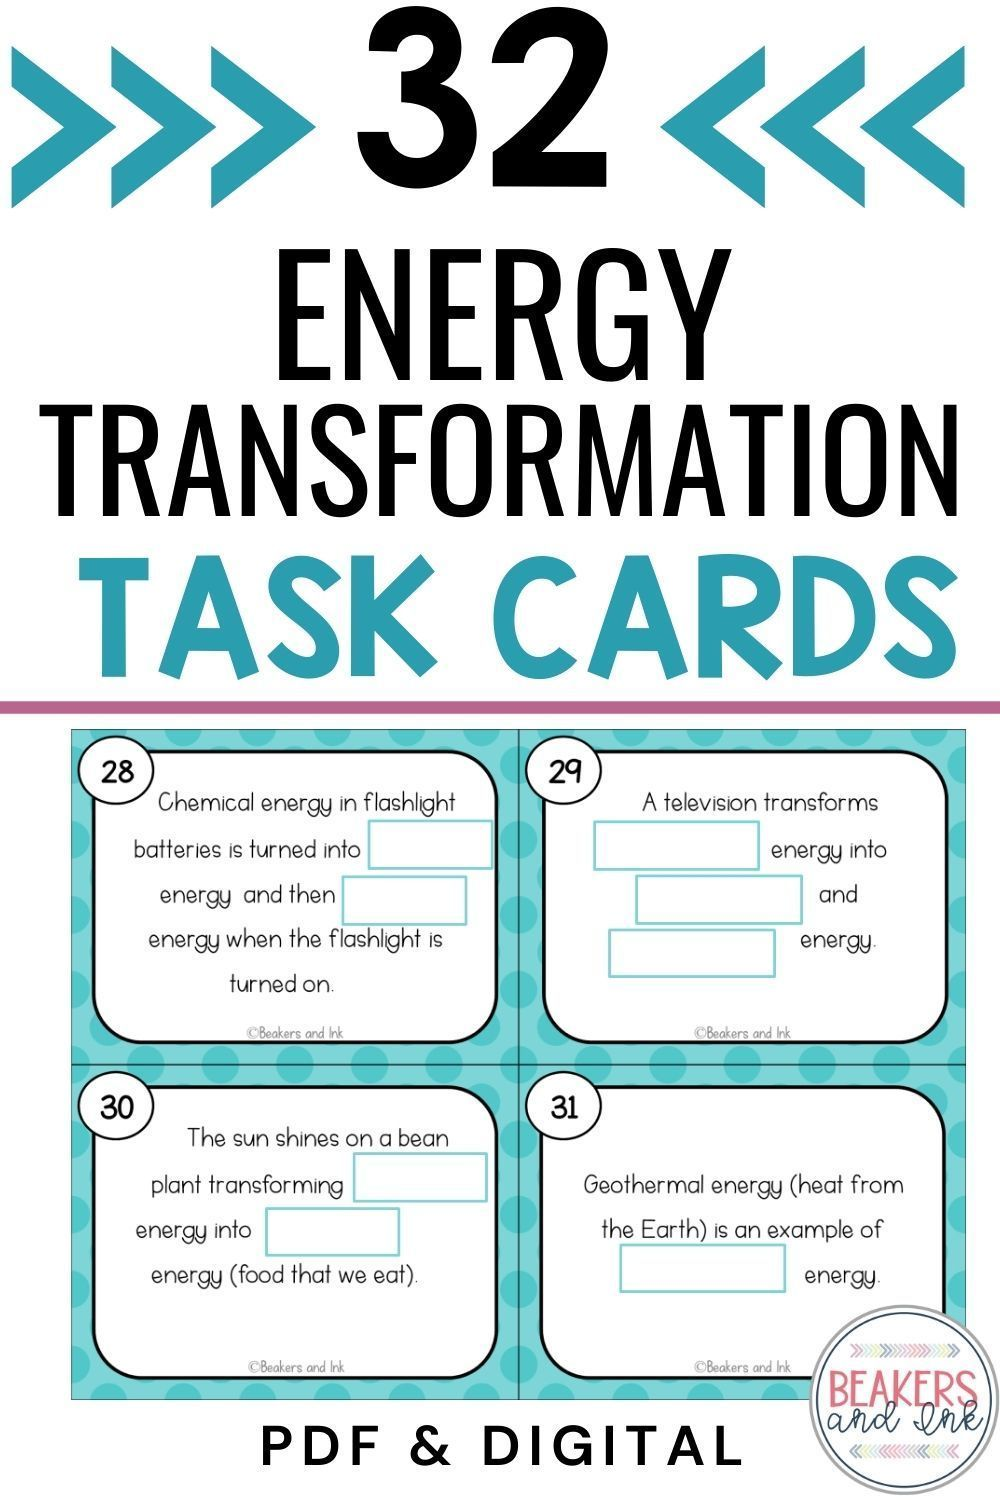 Energy Types And Transformation Task Cards Task Cards Energy Transformations Energy Activities